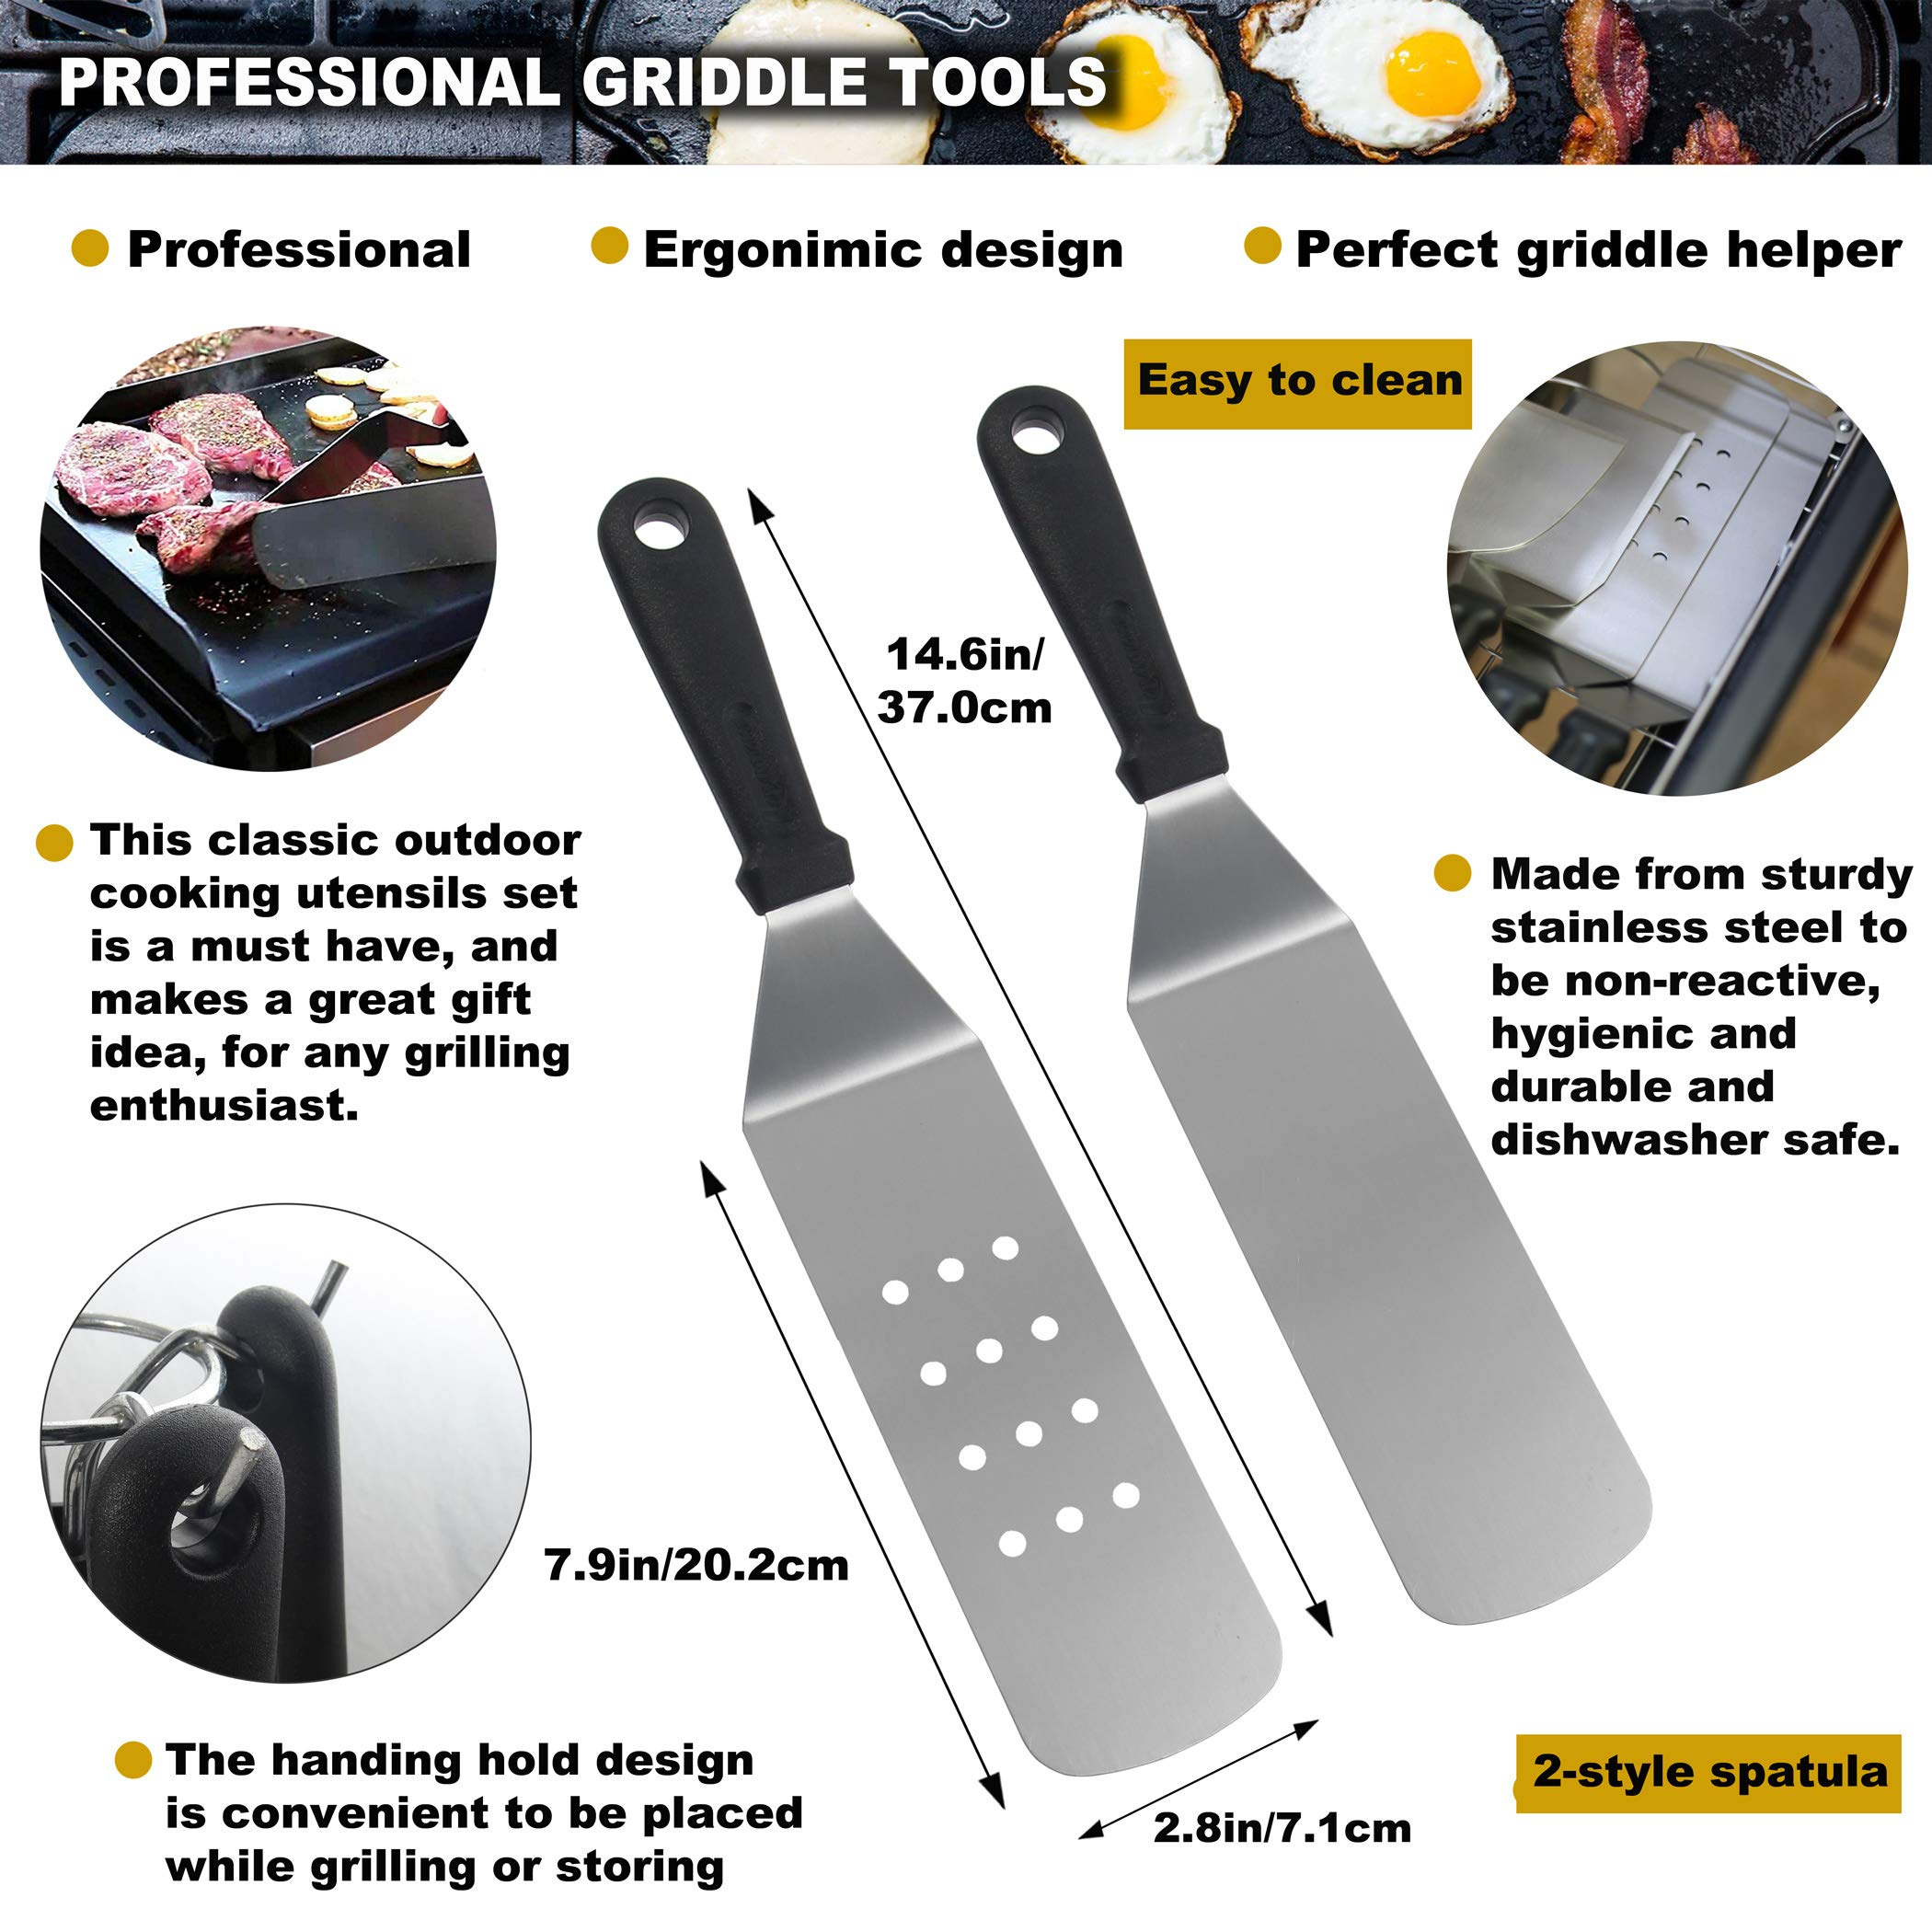 ROMANTICIST 11PC Griddle Accessories Kit with Carrying Bag - Restaurant Grade Griddle Spatula Set for Flat Top Grill Hibachi Cooking - Perfect BBQ Gift for Men Dad on Fathers Day by ROMANTICIST (Image #2)